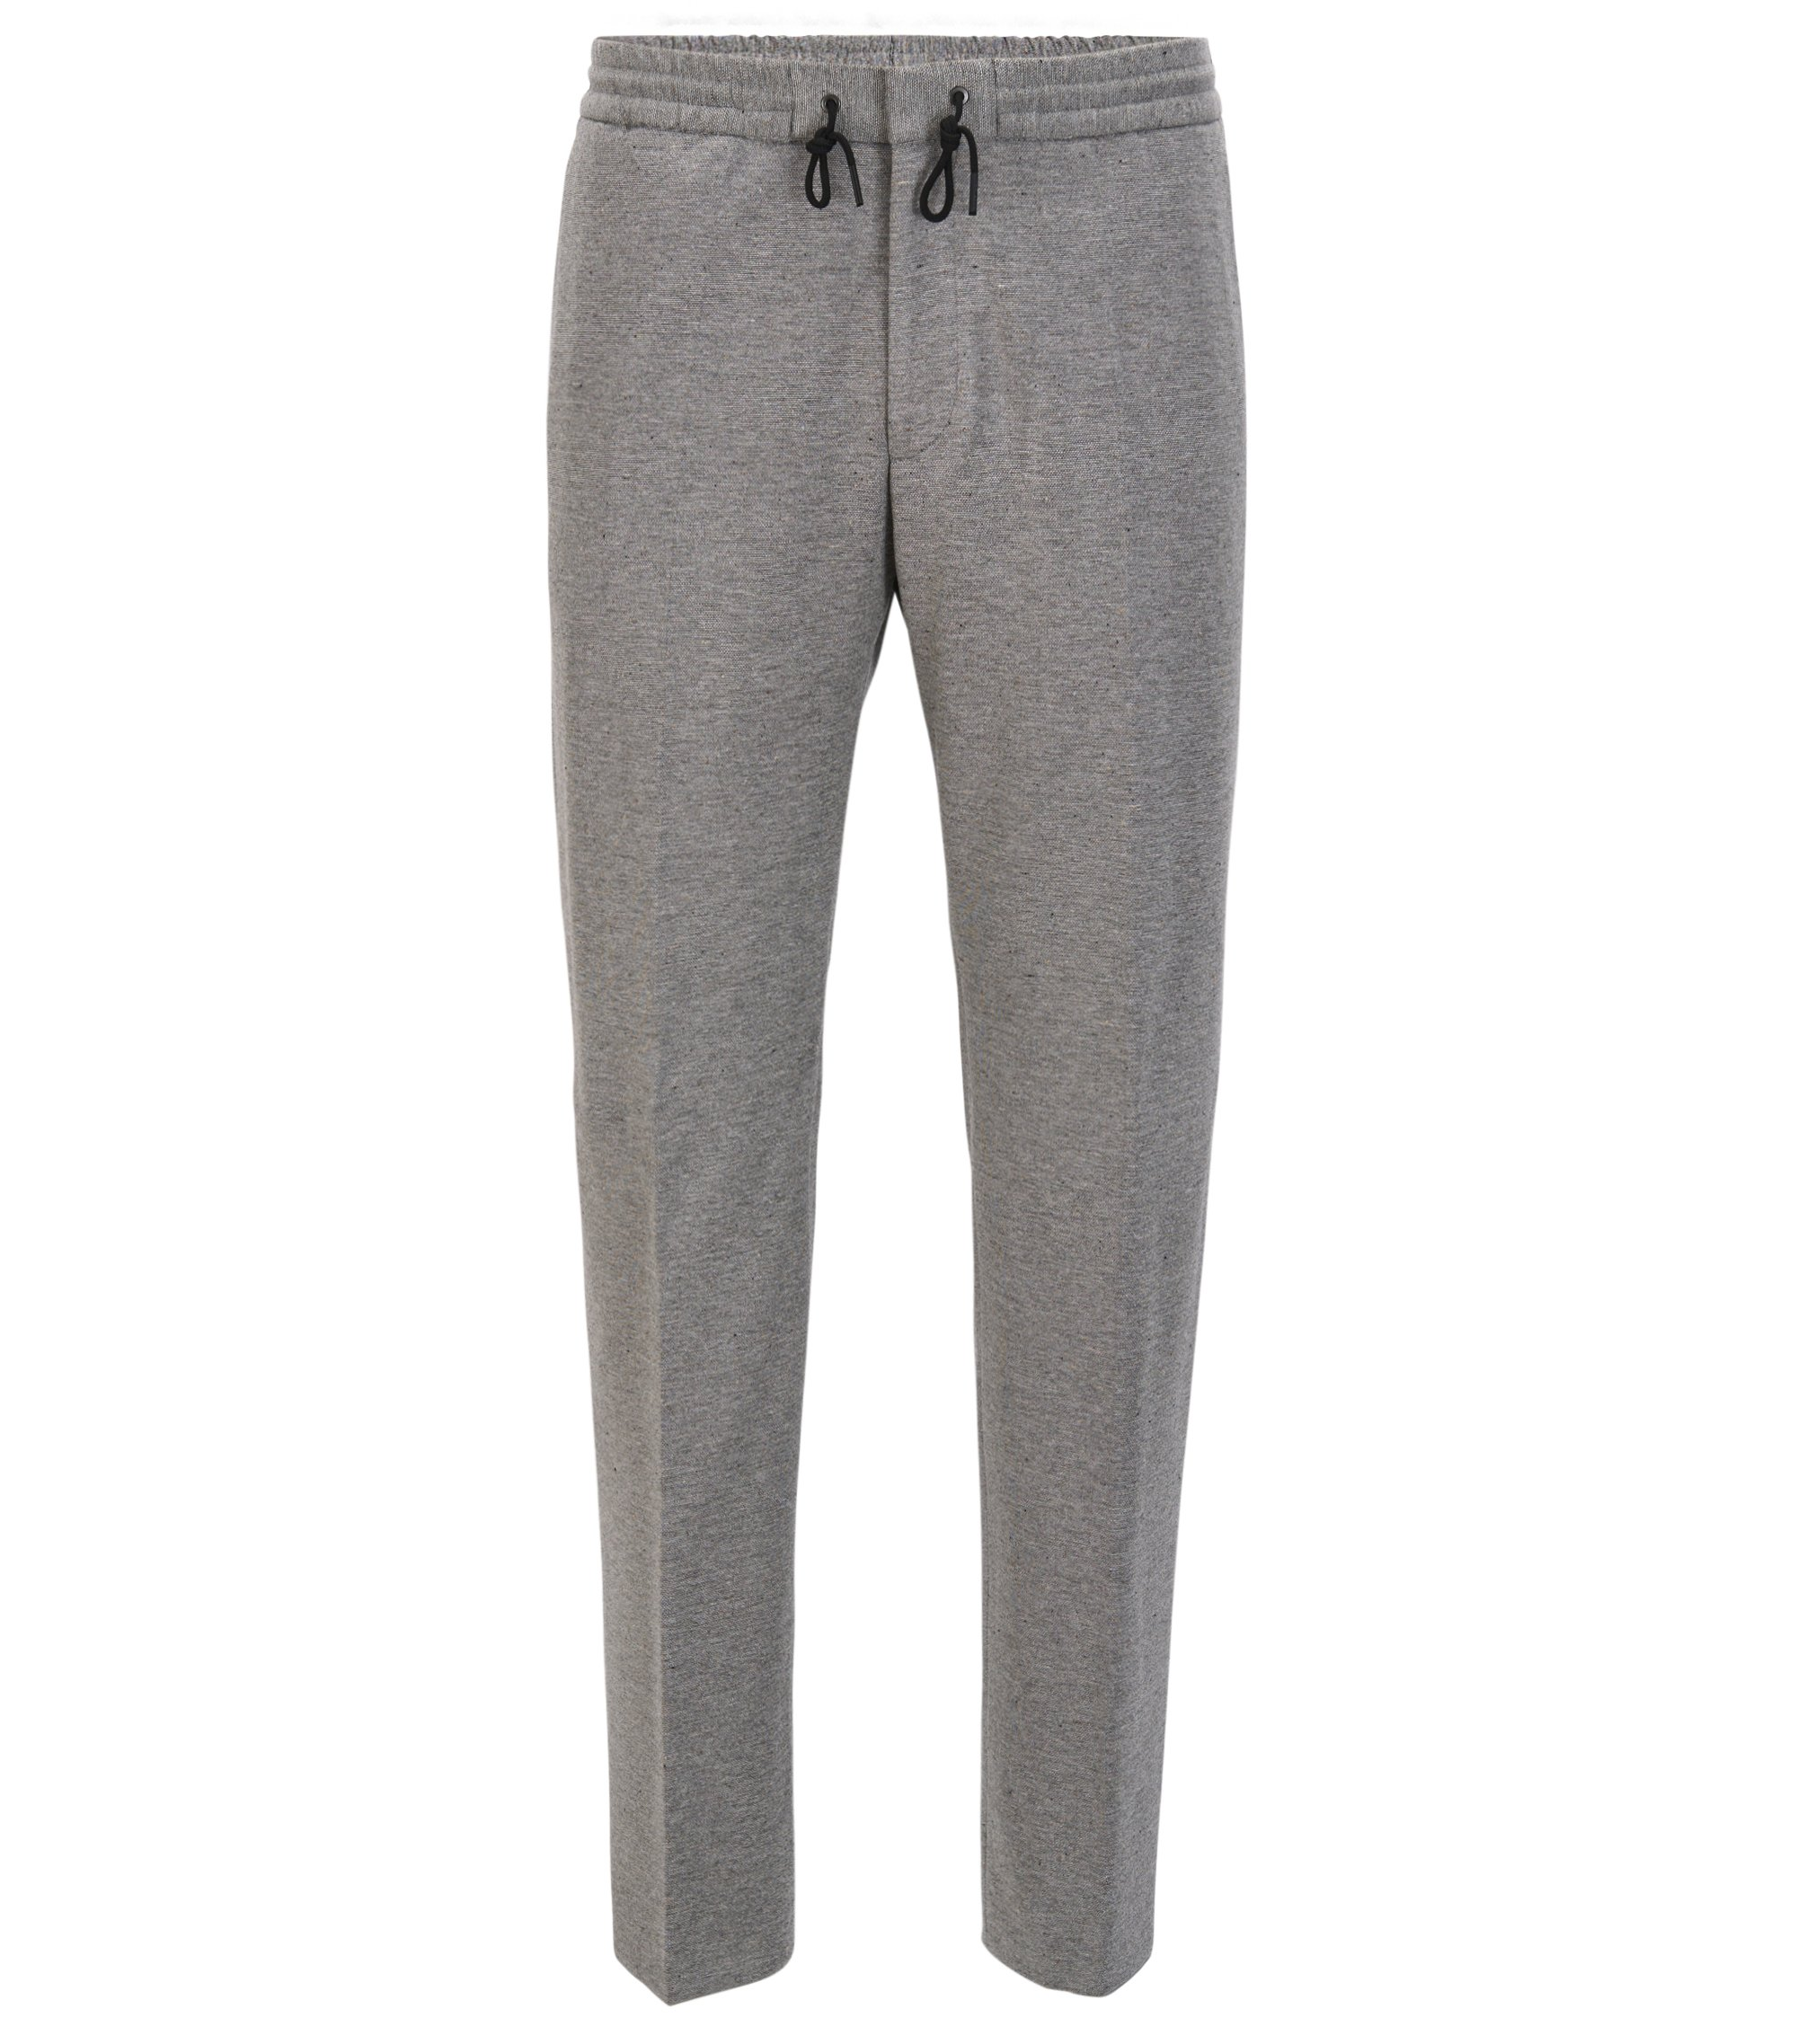 Stretch Dress Pant, Slim Fit | Banks J, Grey